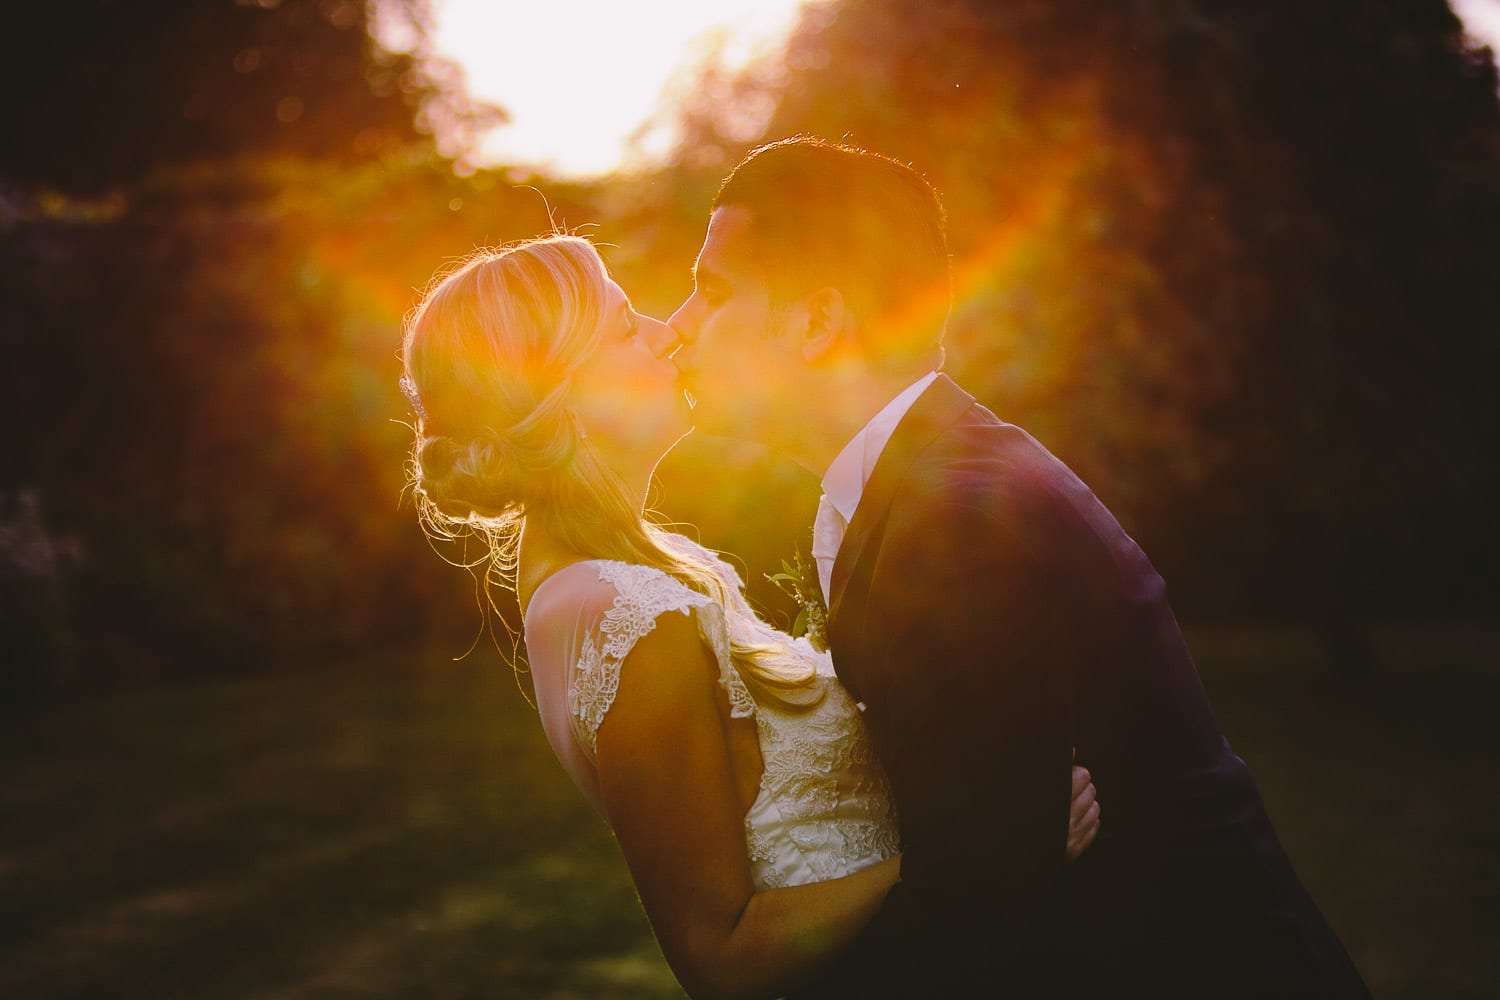 The bride and groom kiss in the sunset